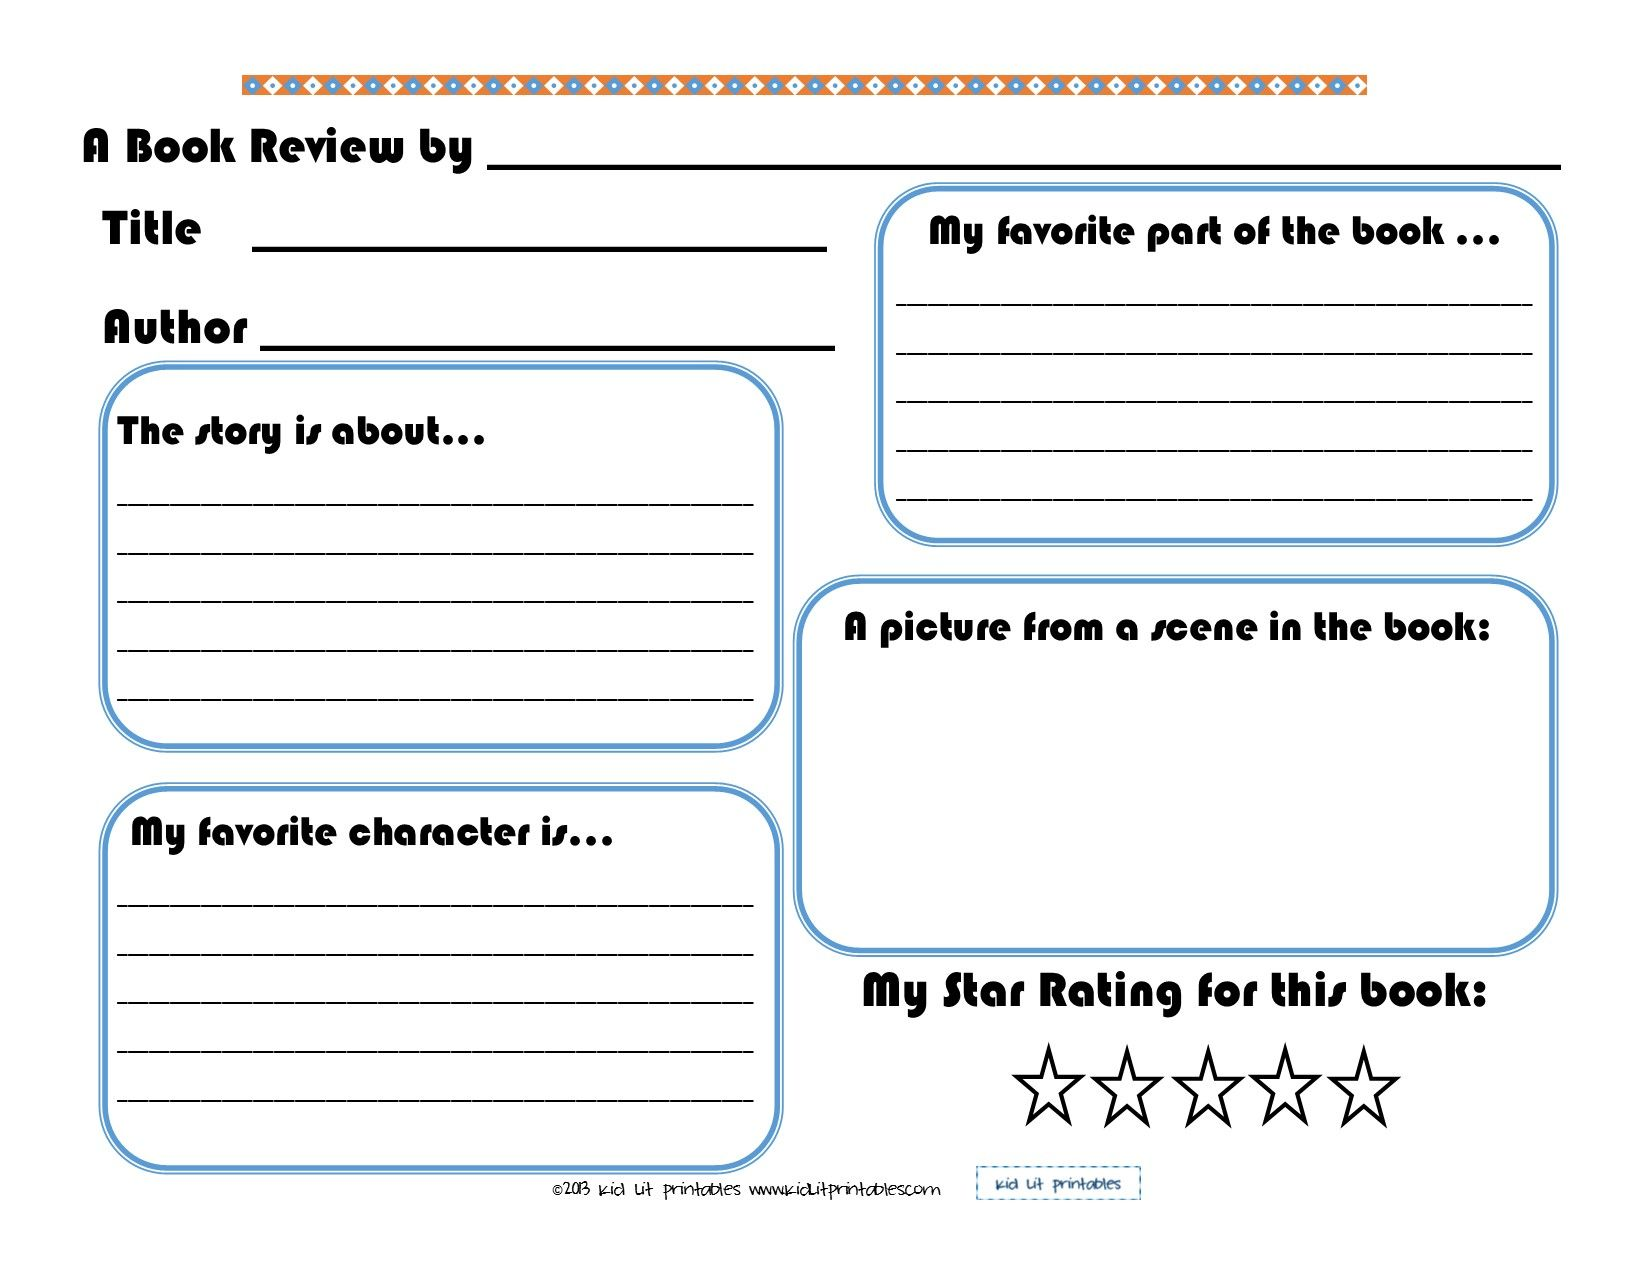 hight resolution of 3 free printable book report forms (and more) for different ages. Enjoy!   Book  report templates